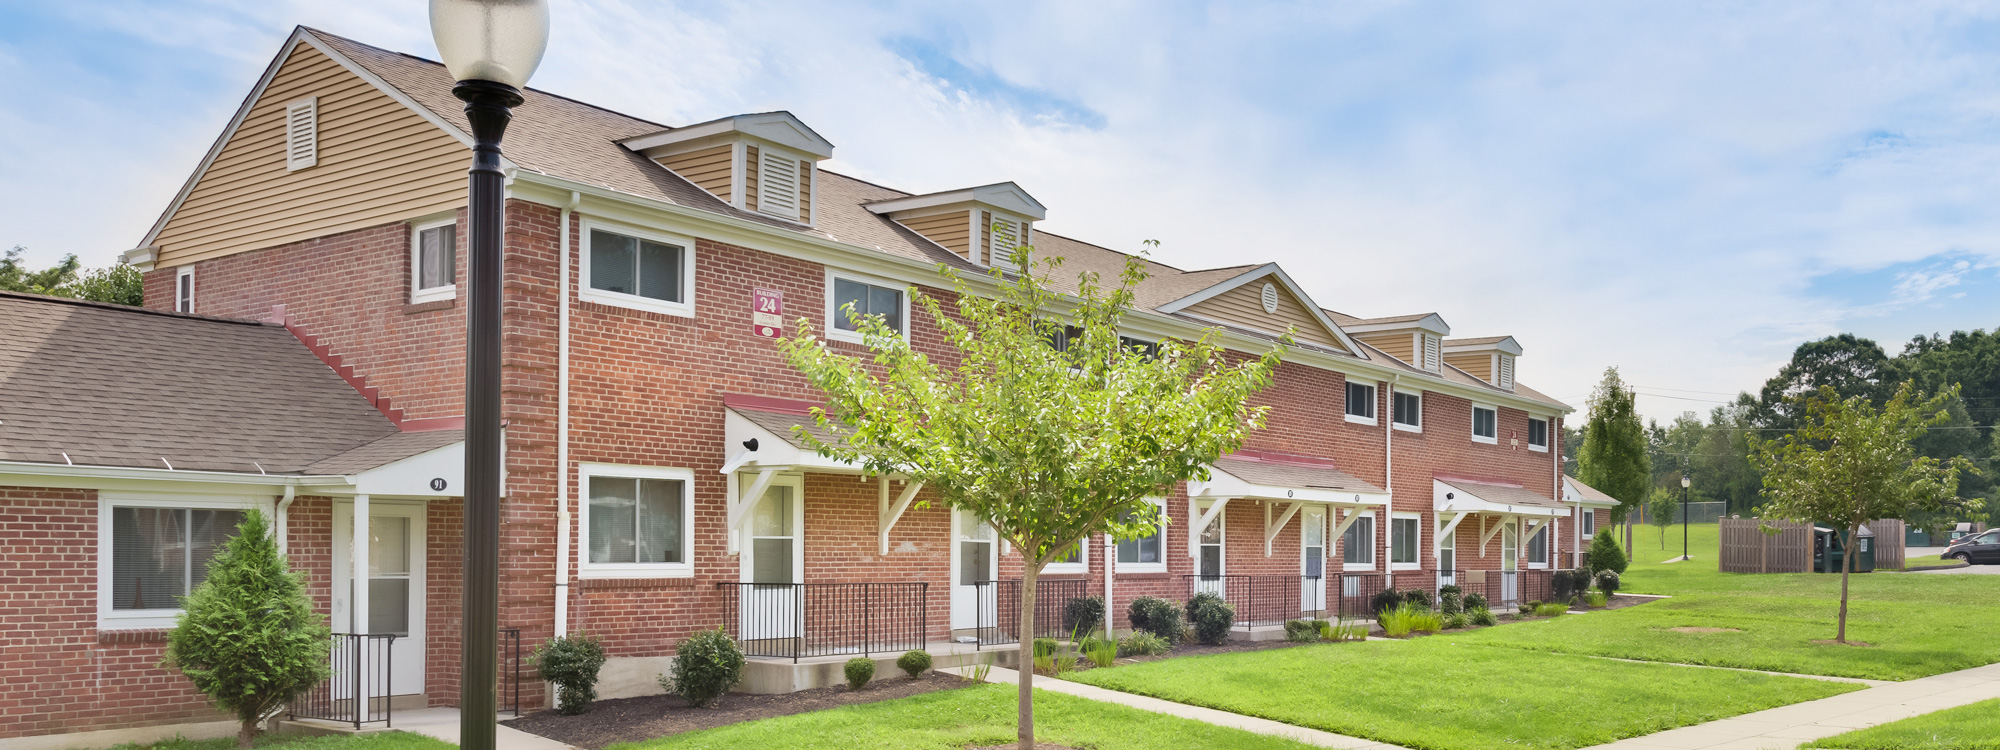 Country Village Apartments, Waterbury CT